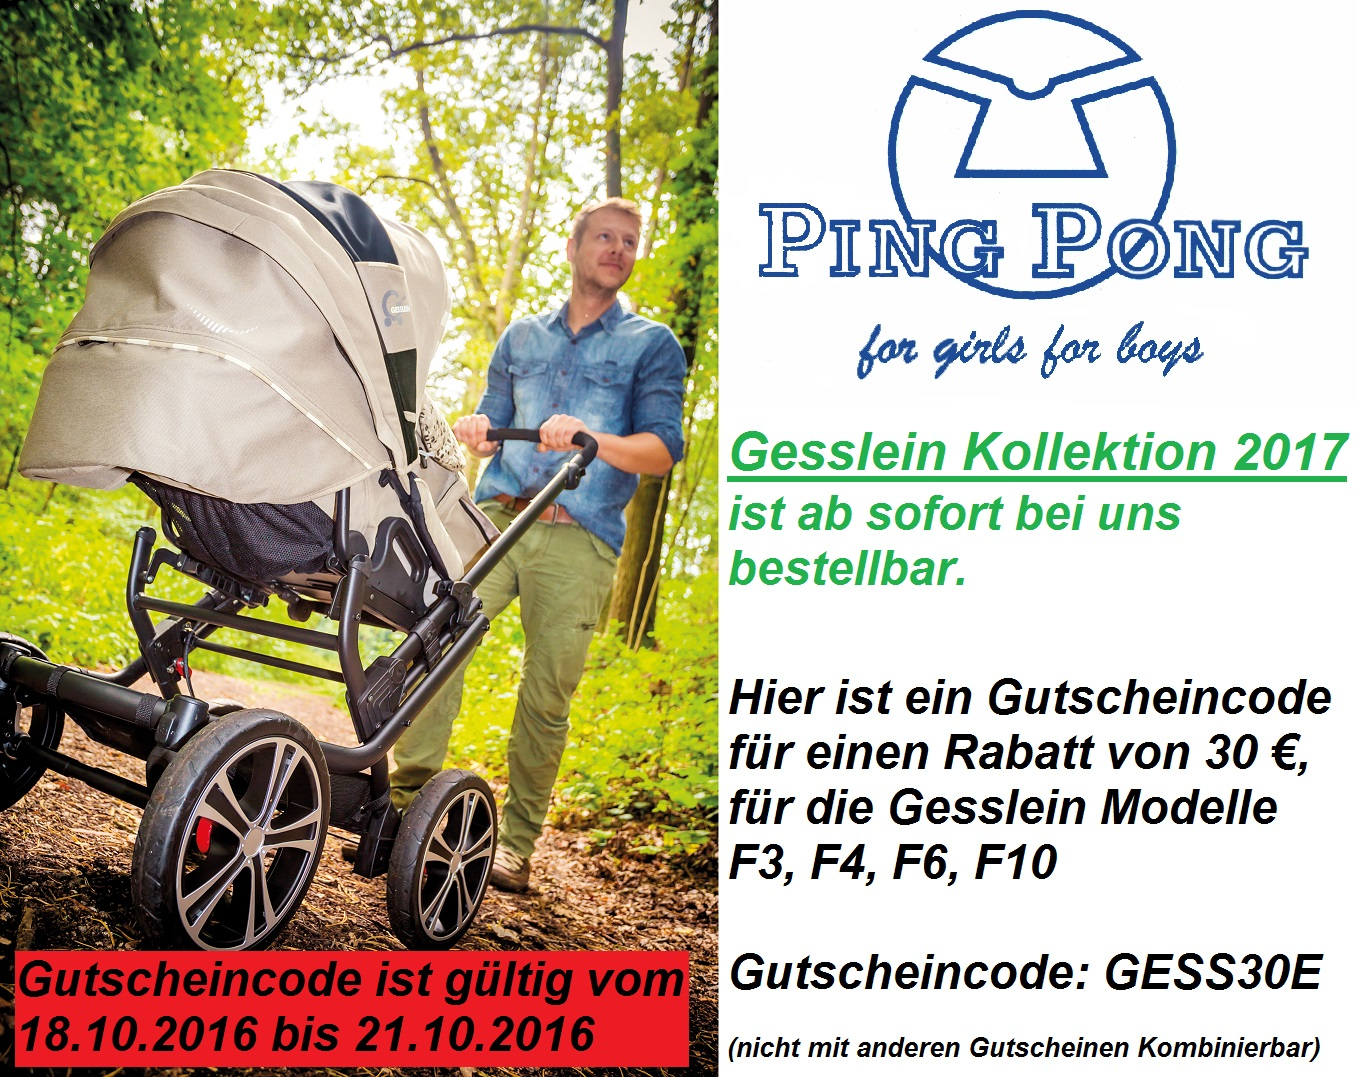 Gesslein Kinderwagen Modelle 2017 Ping Pong For Girls For Boys Gesslein 2017 Gutscheincode